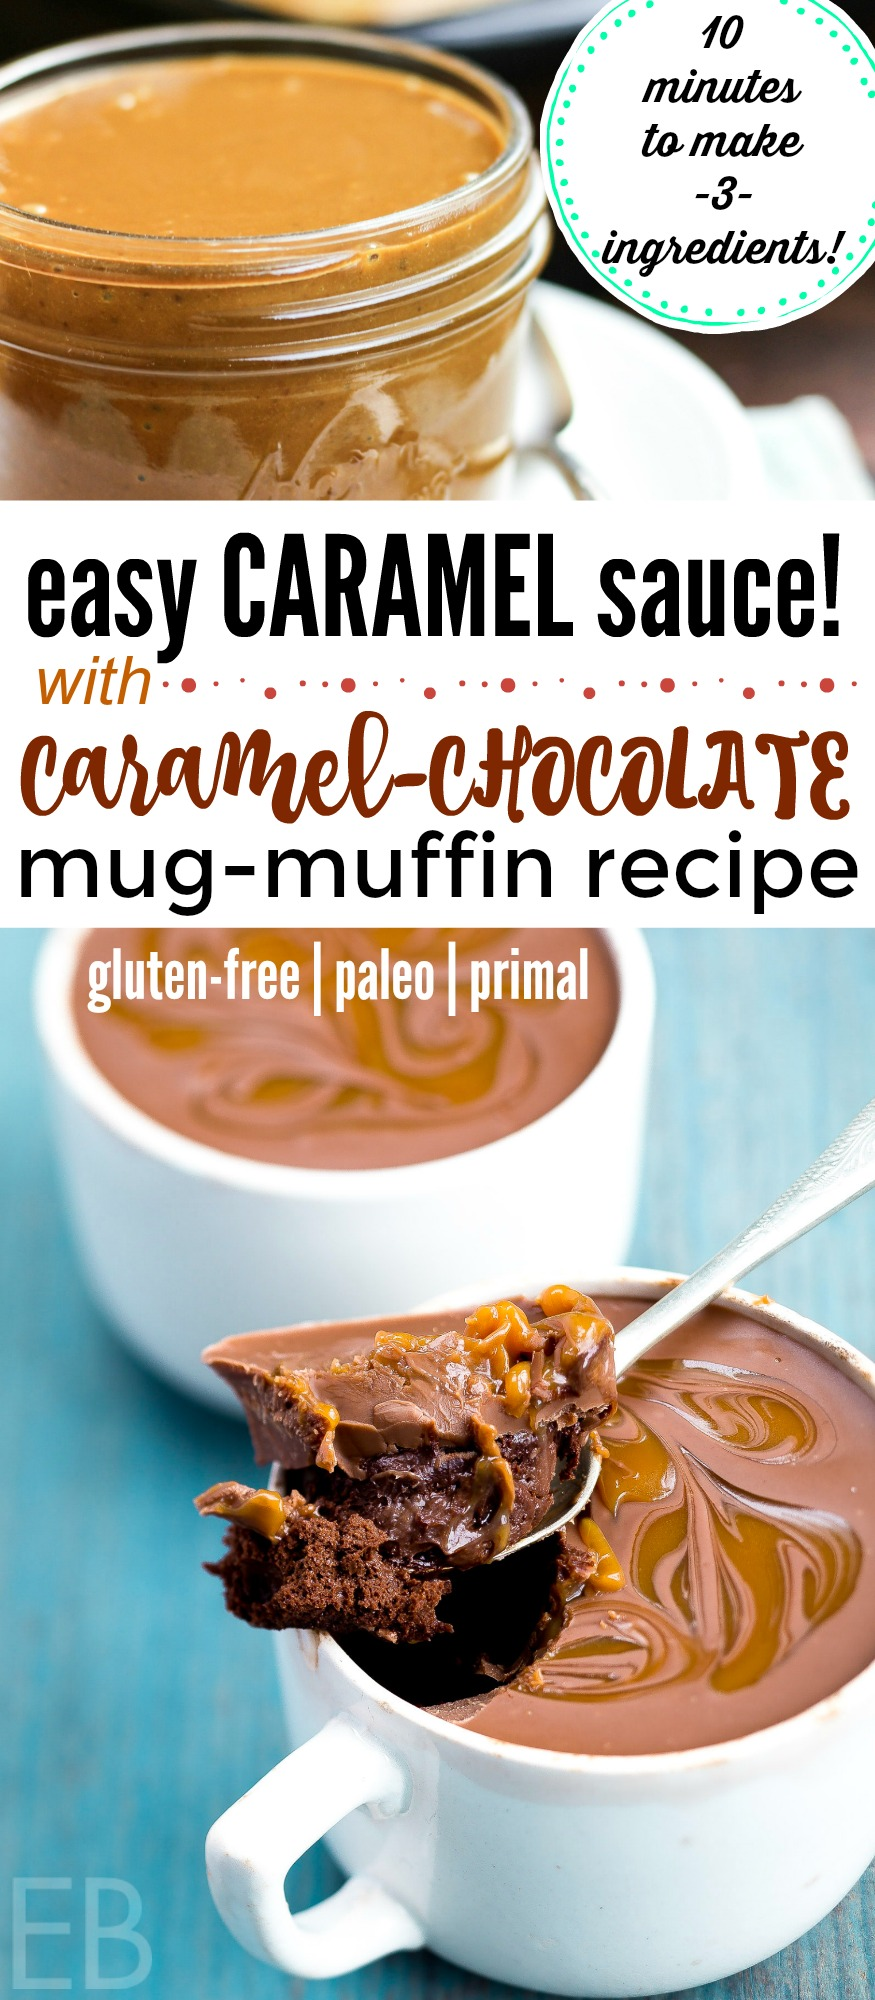 Paleo & AIP Easy Caramel Sauce (with Primal variation) and **Caramel-Chocolate Mug-Muffin Recipe!** You'll love how easy and fast this caramel sauce is!! And then the Caramel-Chocolate Mug-Muffin option is AMAZING!! SUCH a moist and decadent and delicious Paleo dessert treat!! Fun to make for friends or family! #recipe #caramelchocolate